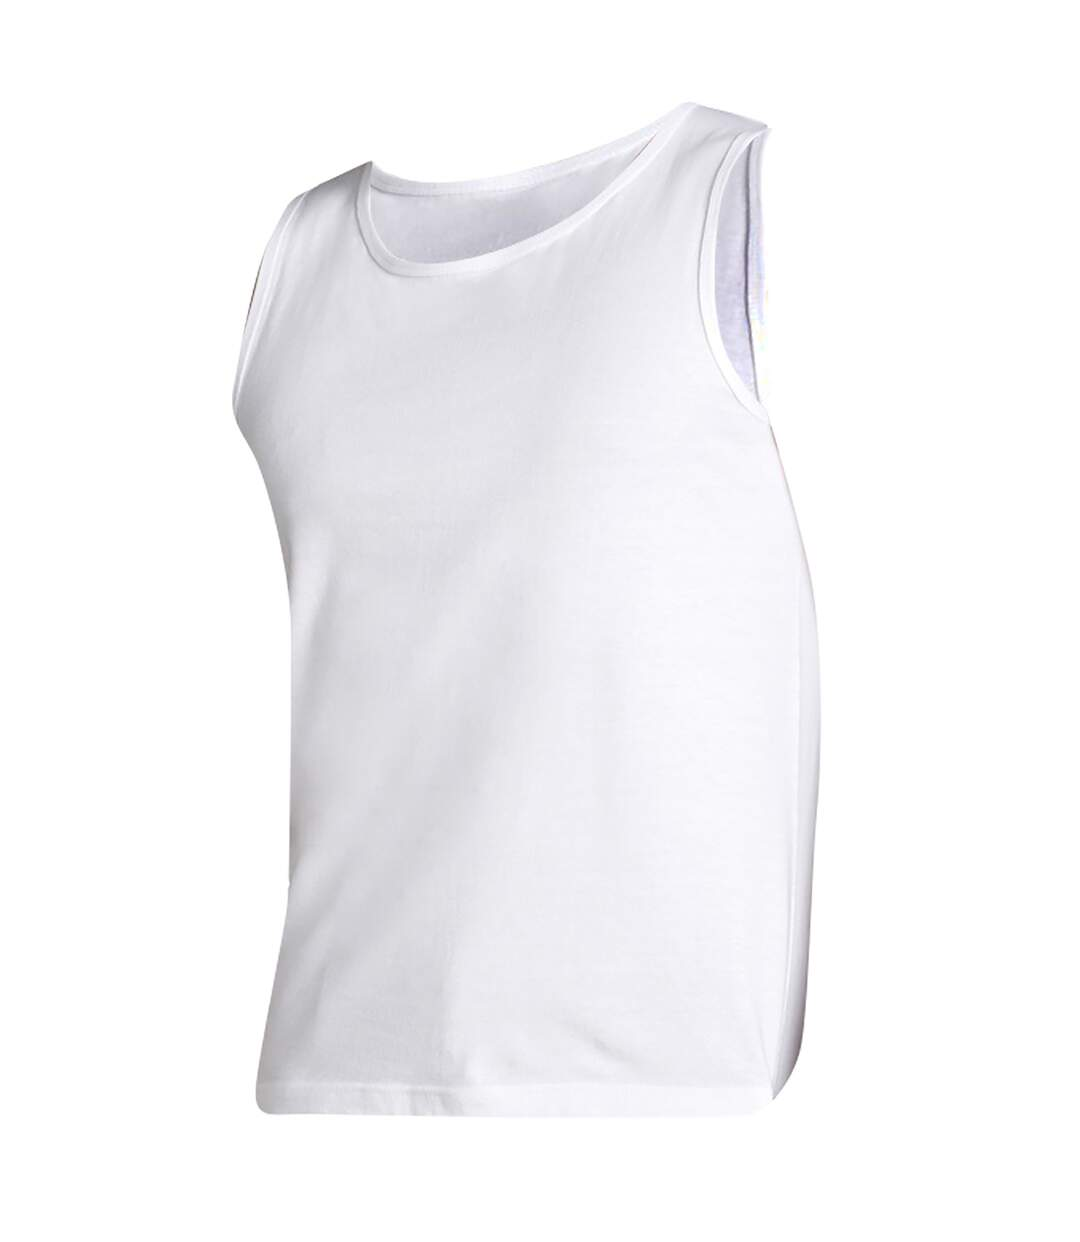 SOLS Mens Justin Sleeveless Tank / Vest Top (White) - UTPC312